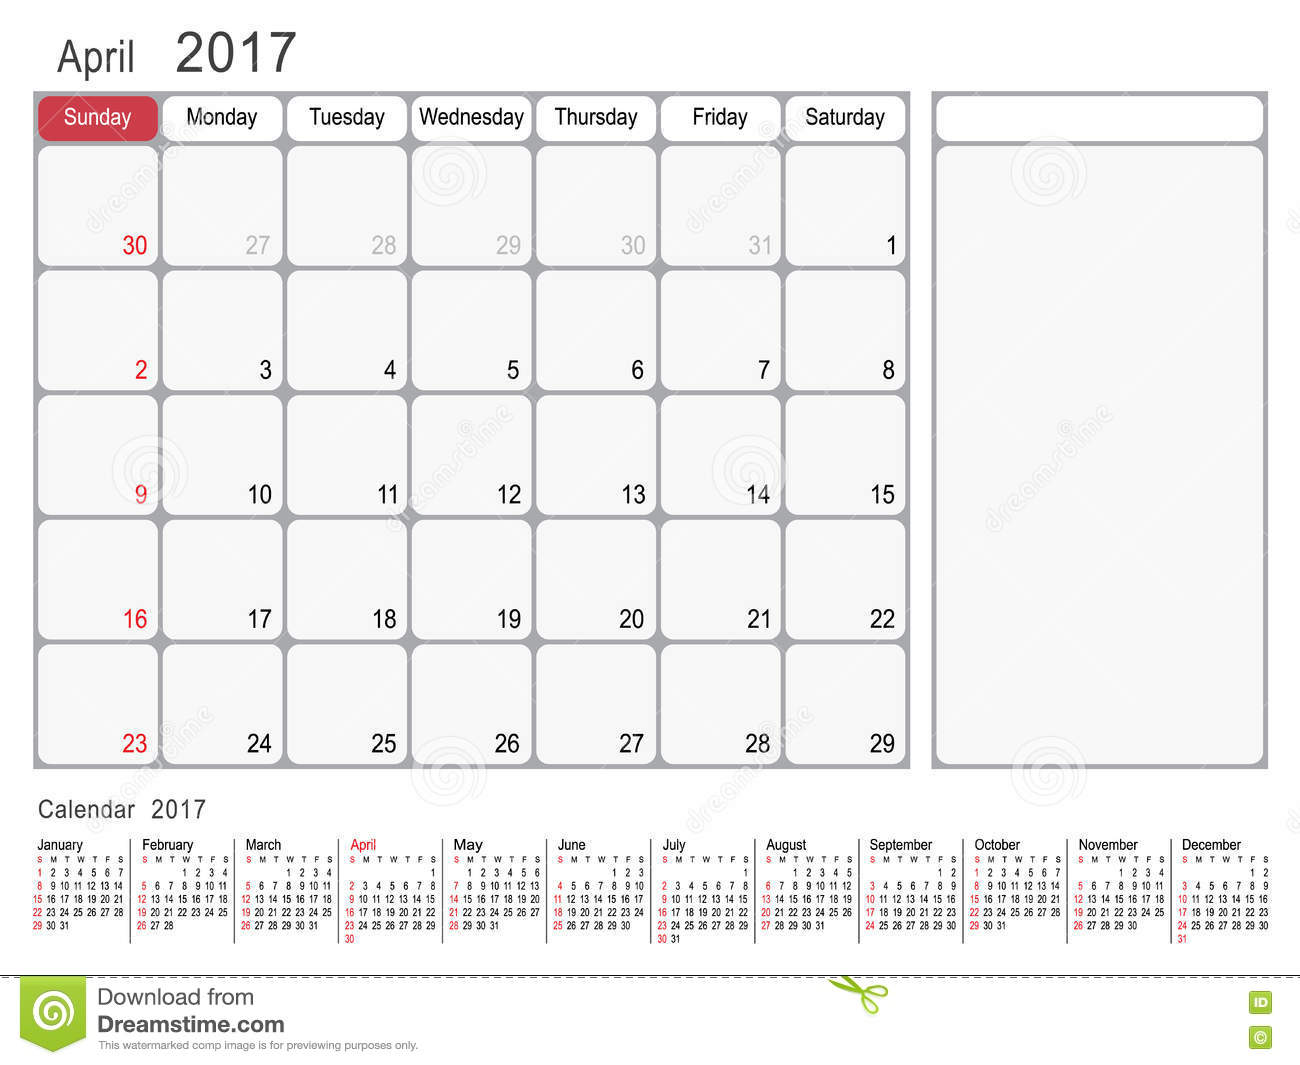 kalender planer im april 2017 vektor abbildung bild 82241591. Black Bedroom Furniture Sets. Home Design Ideas